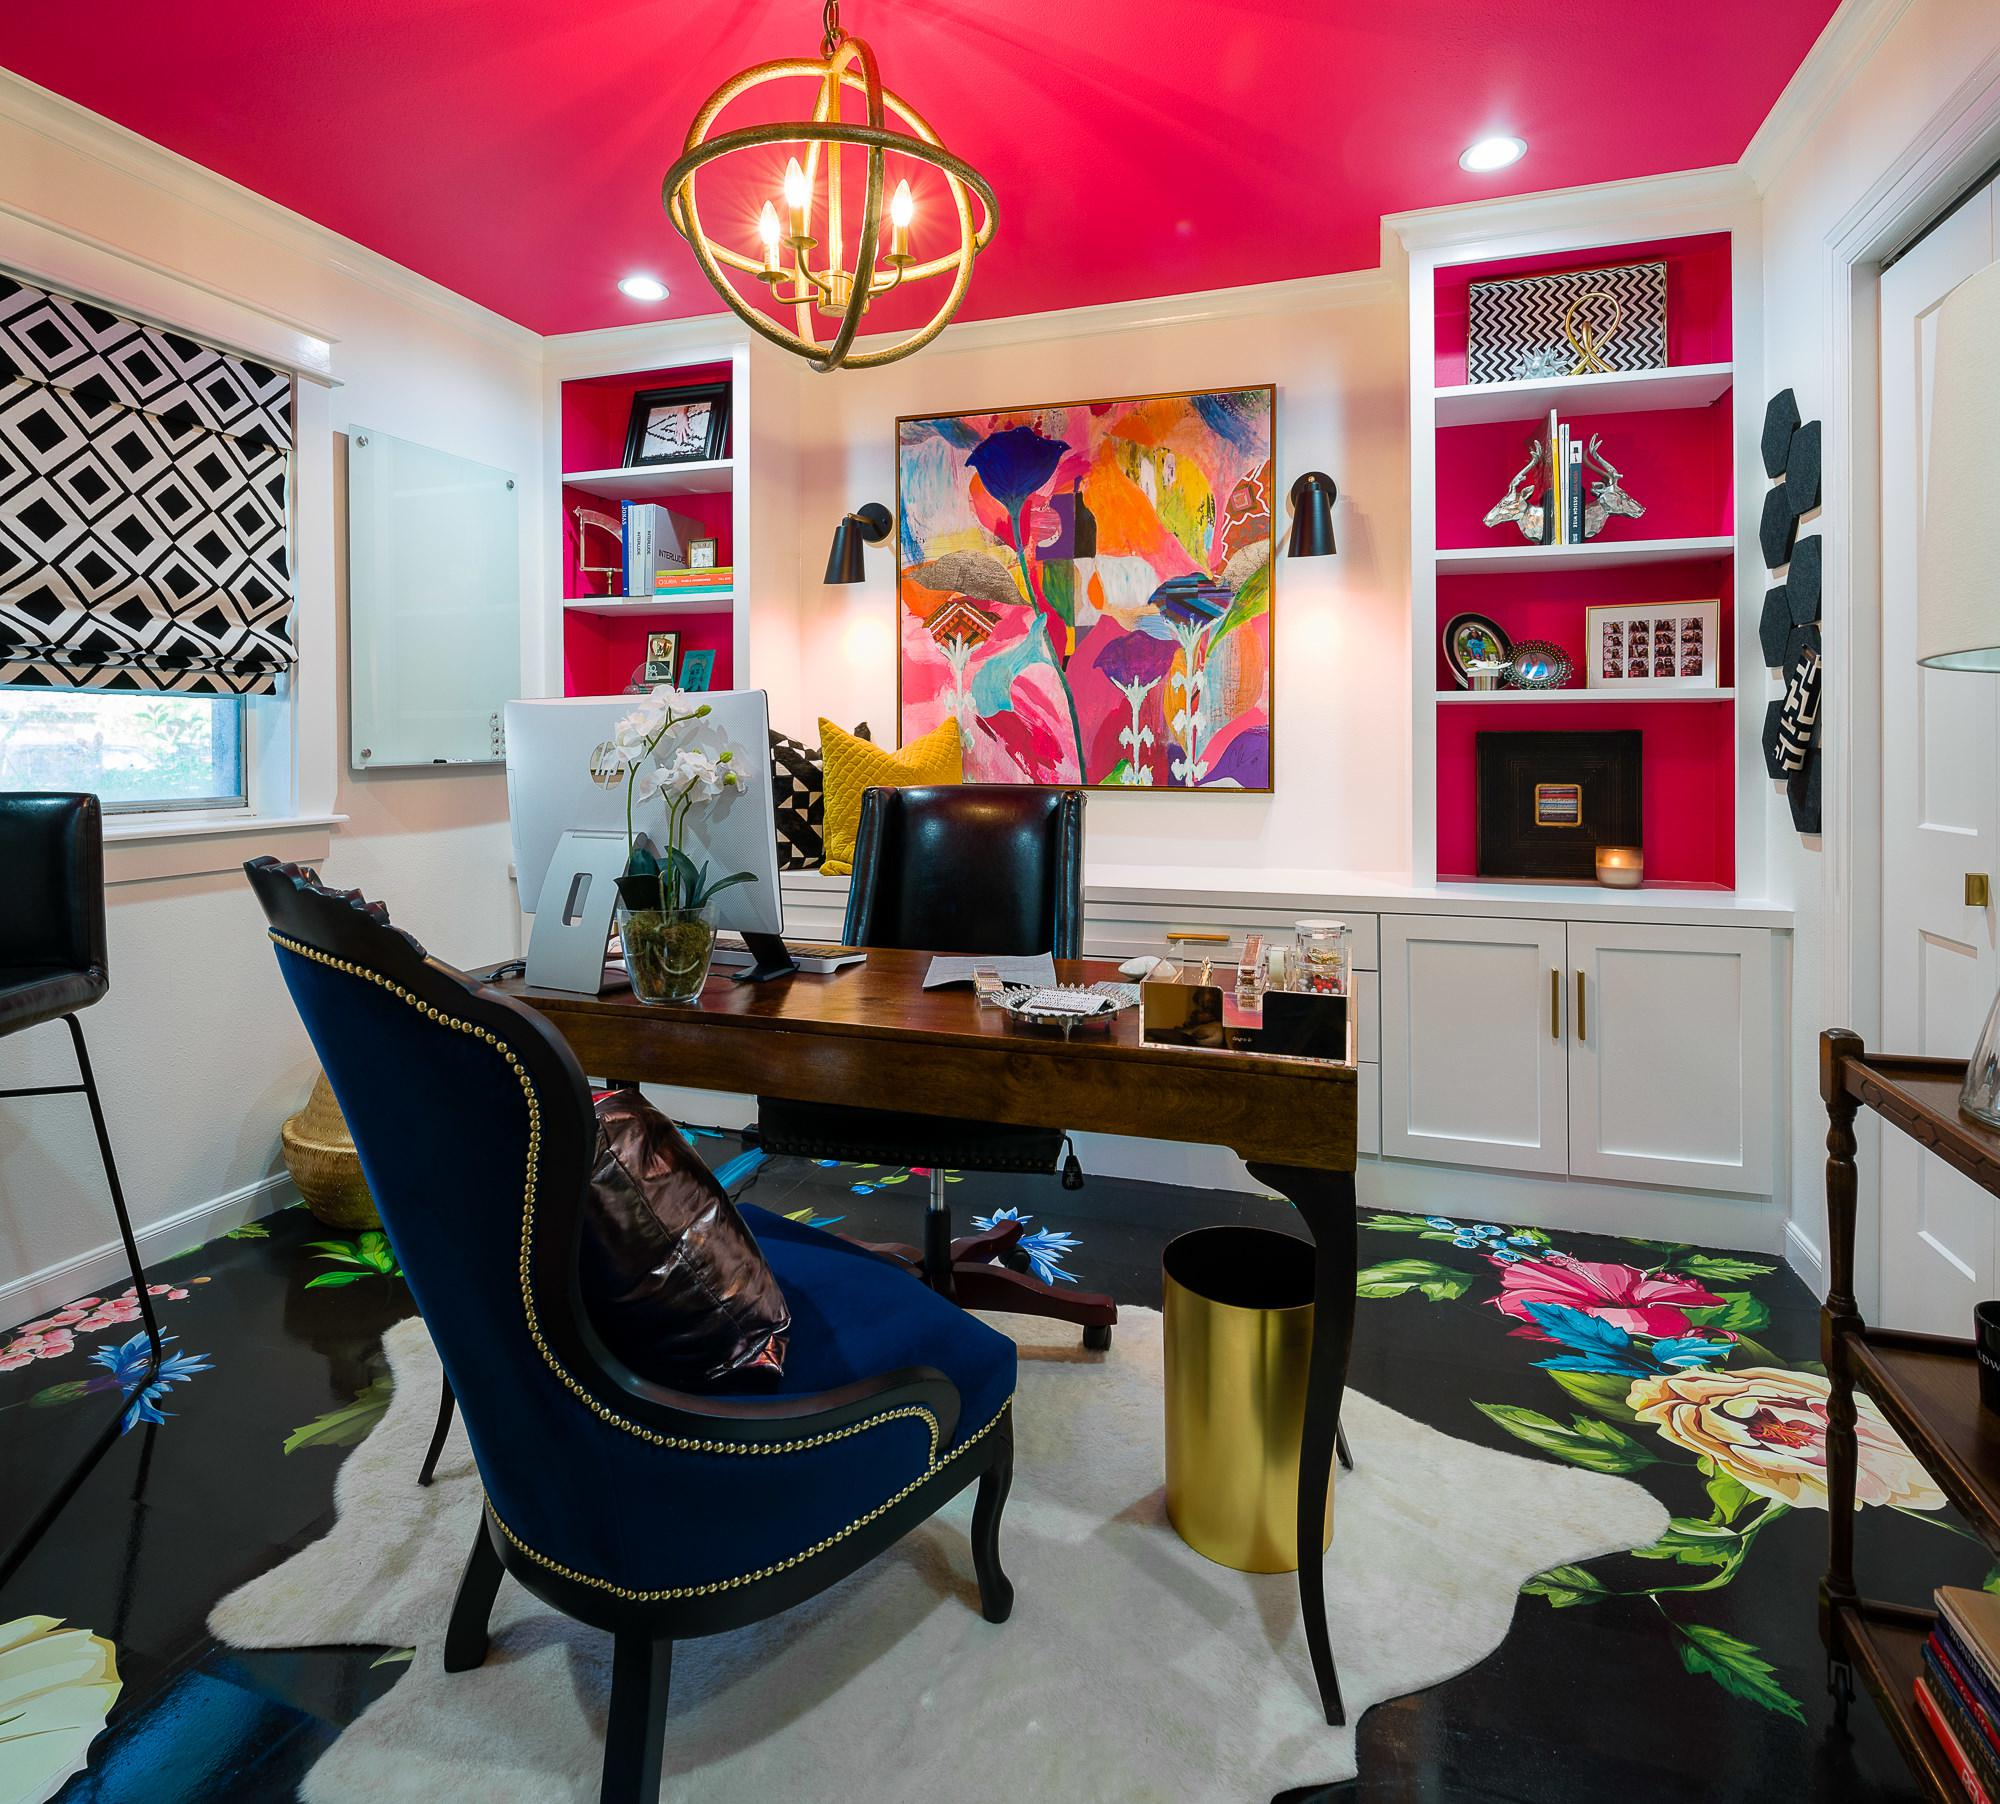 Home Office Is Interior Designer's Bold Portfolio Sample